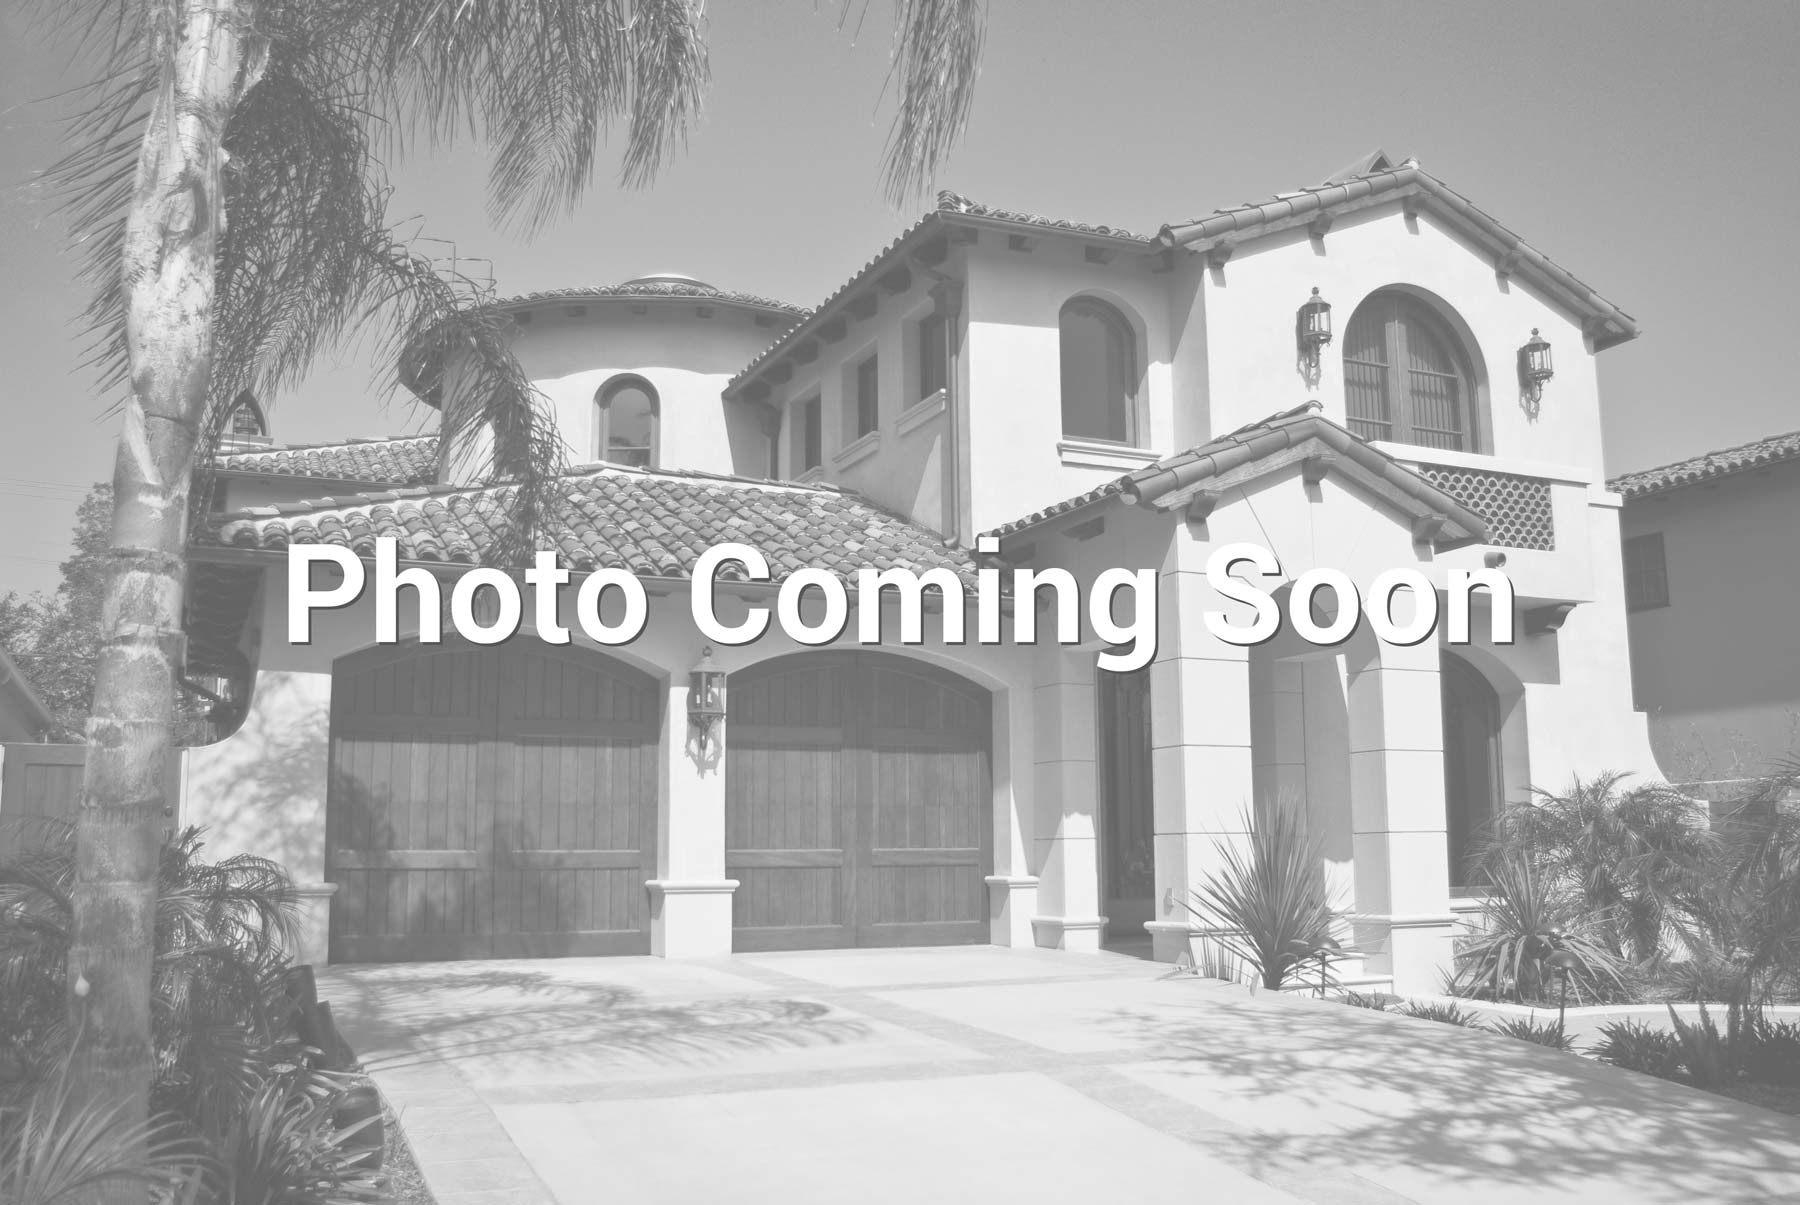 $70,000 - 3Br/2Ba -  for Sale in Redlands